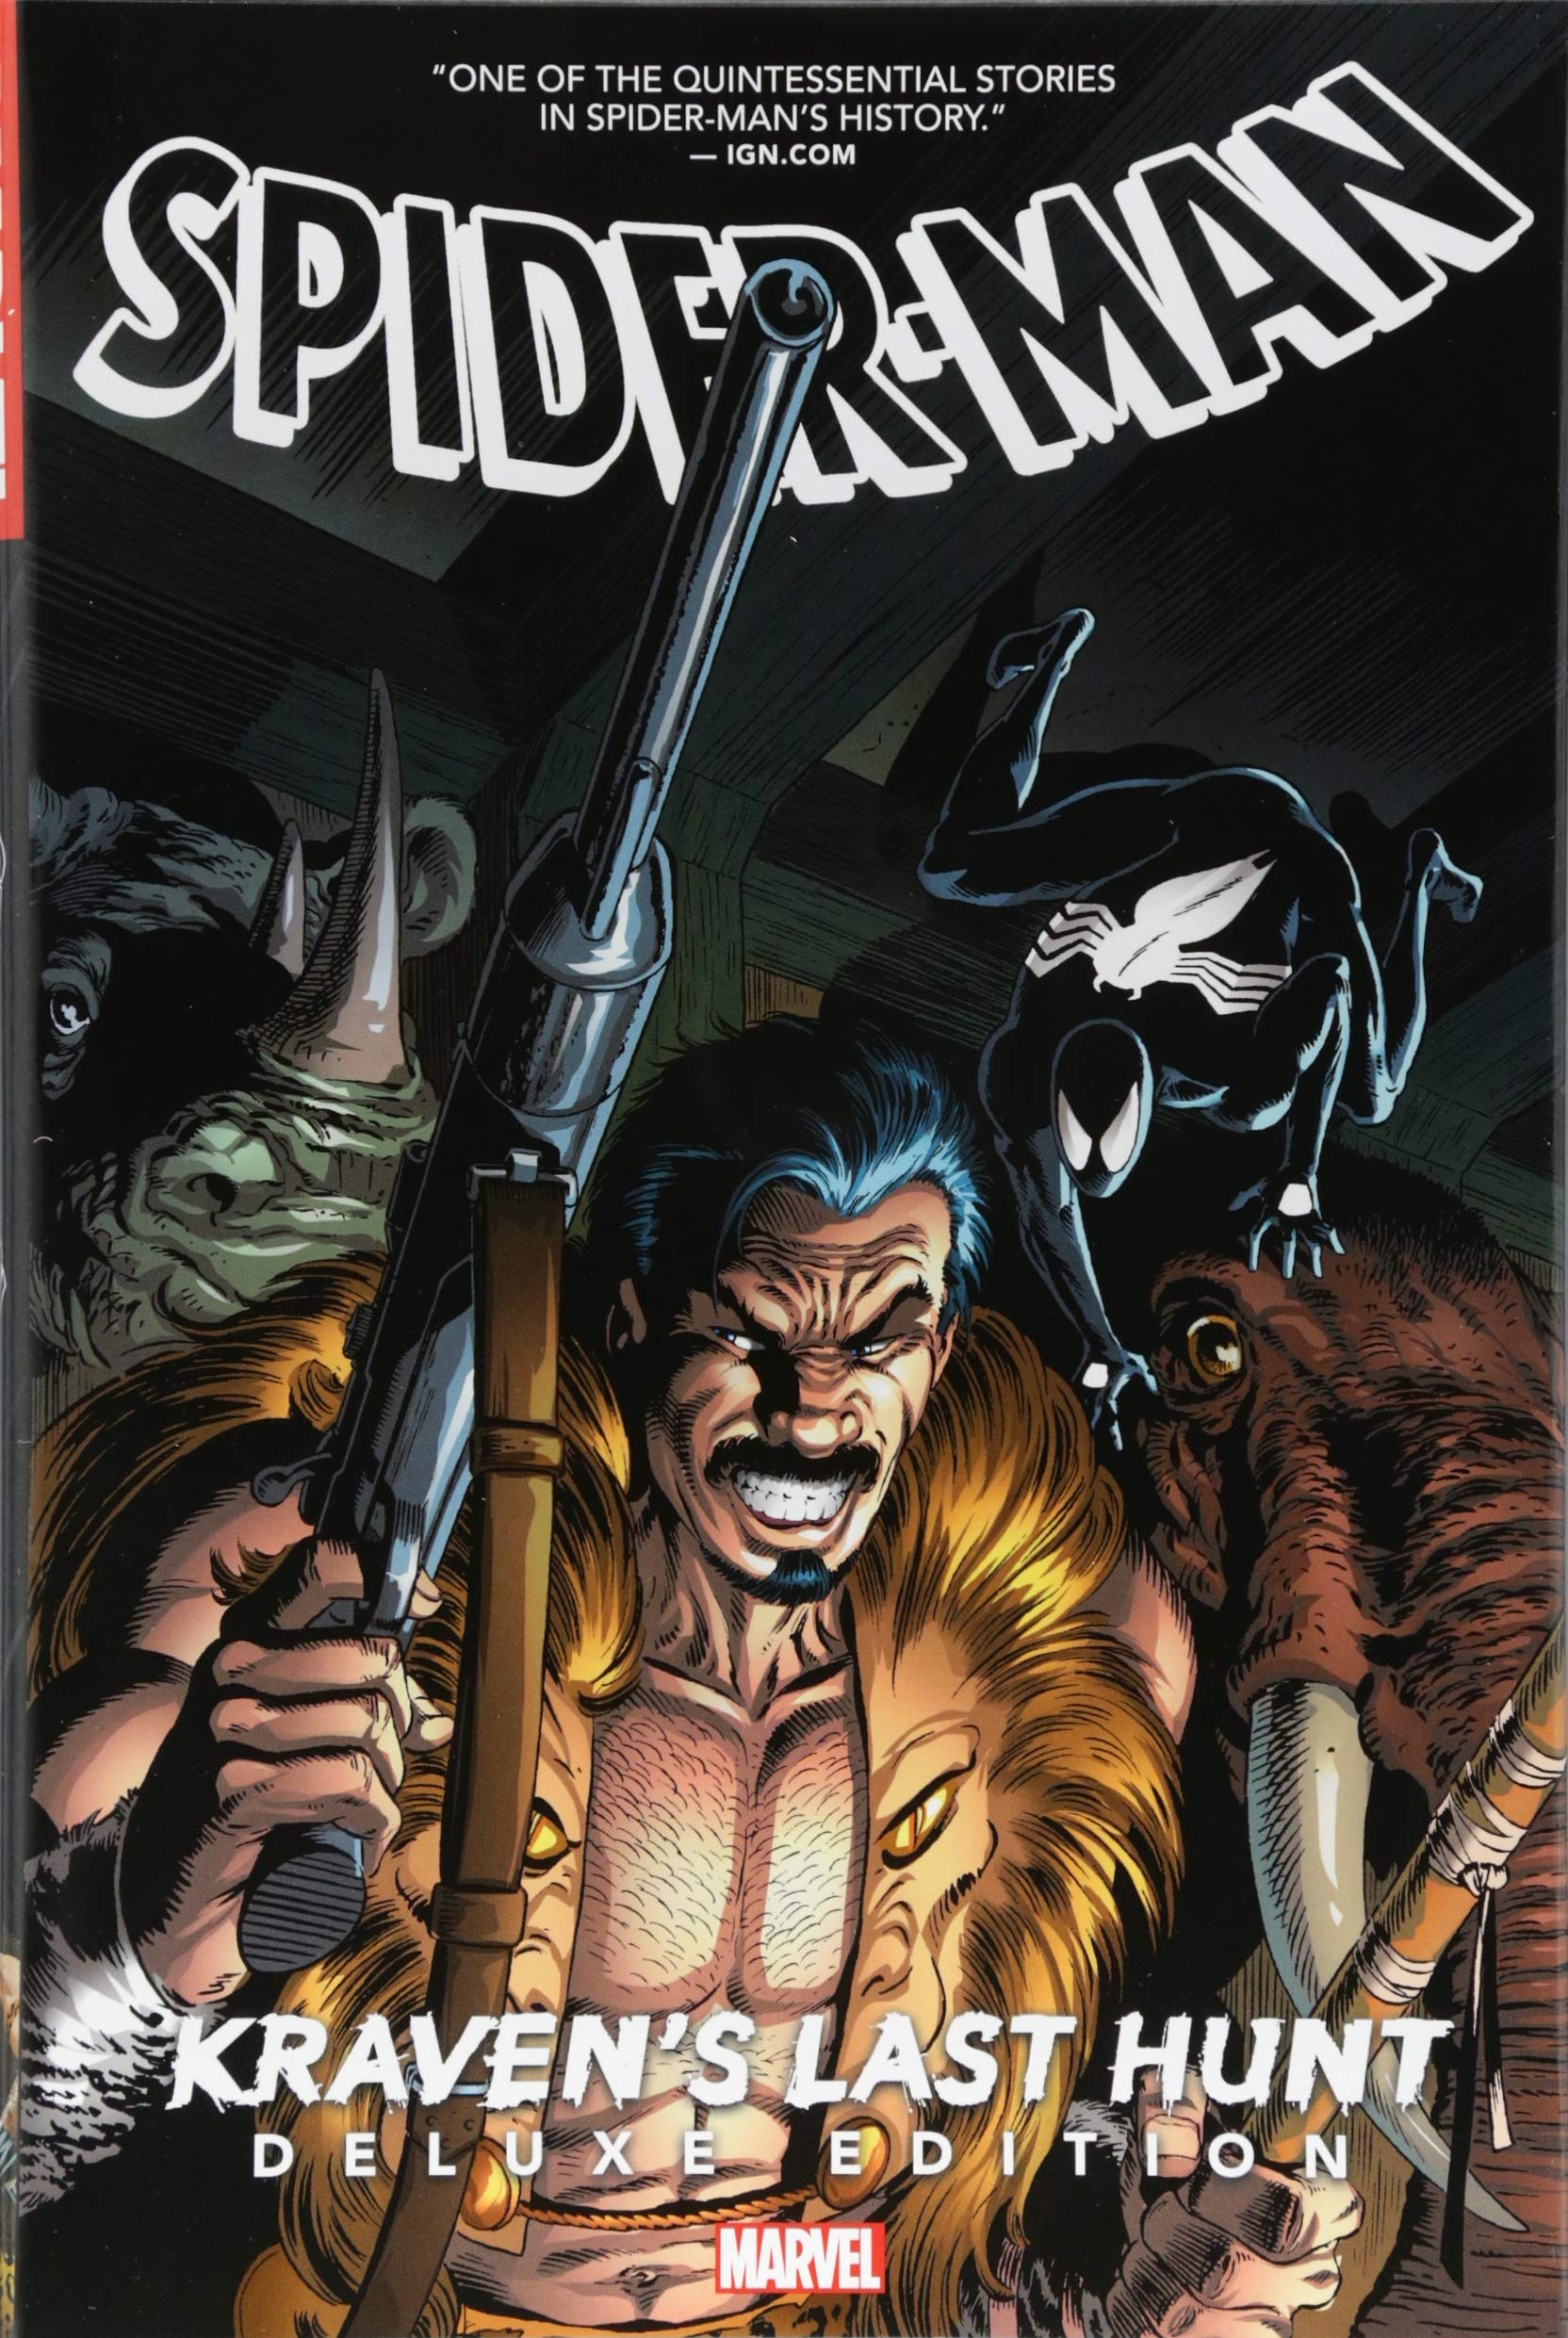 Image result for Kraven's Last Hunt""